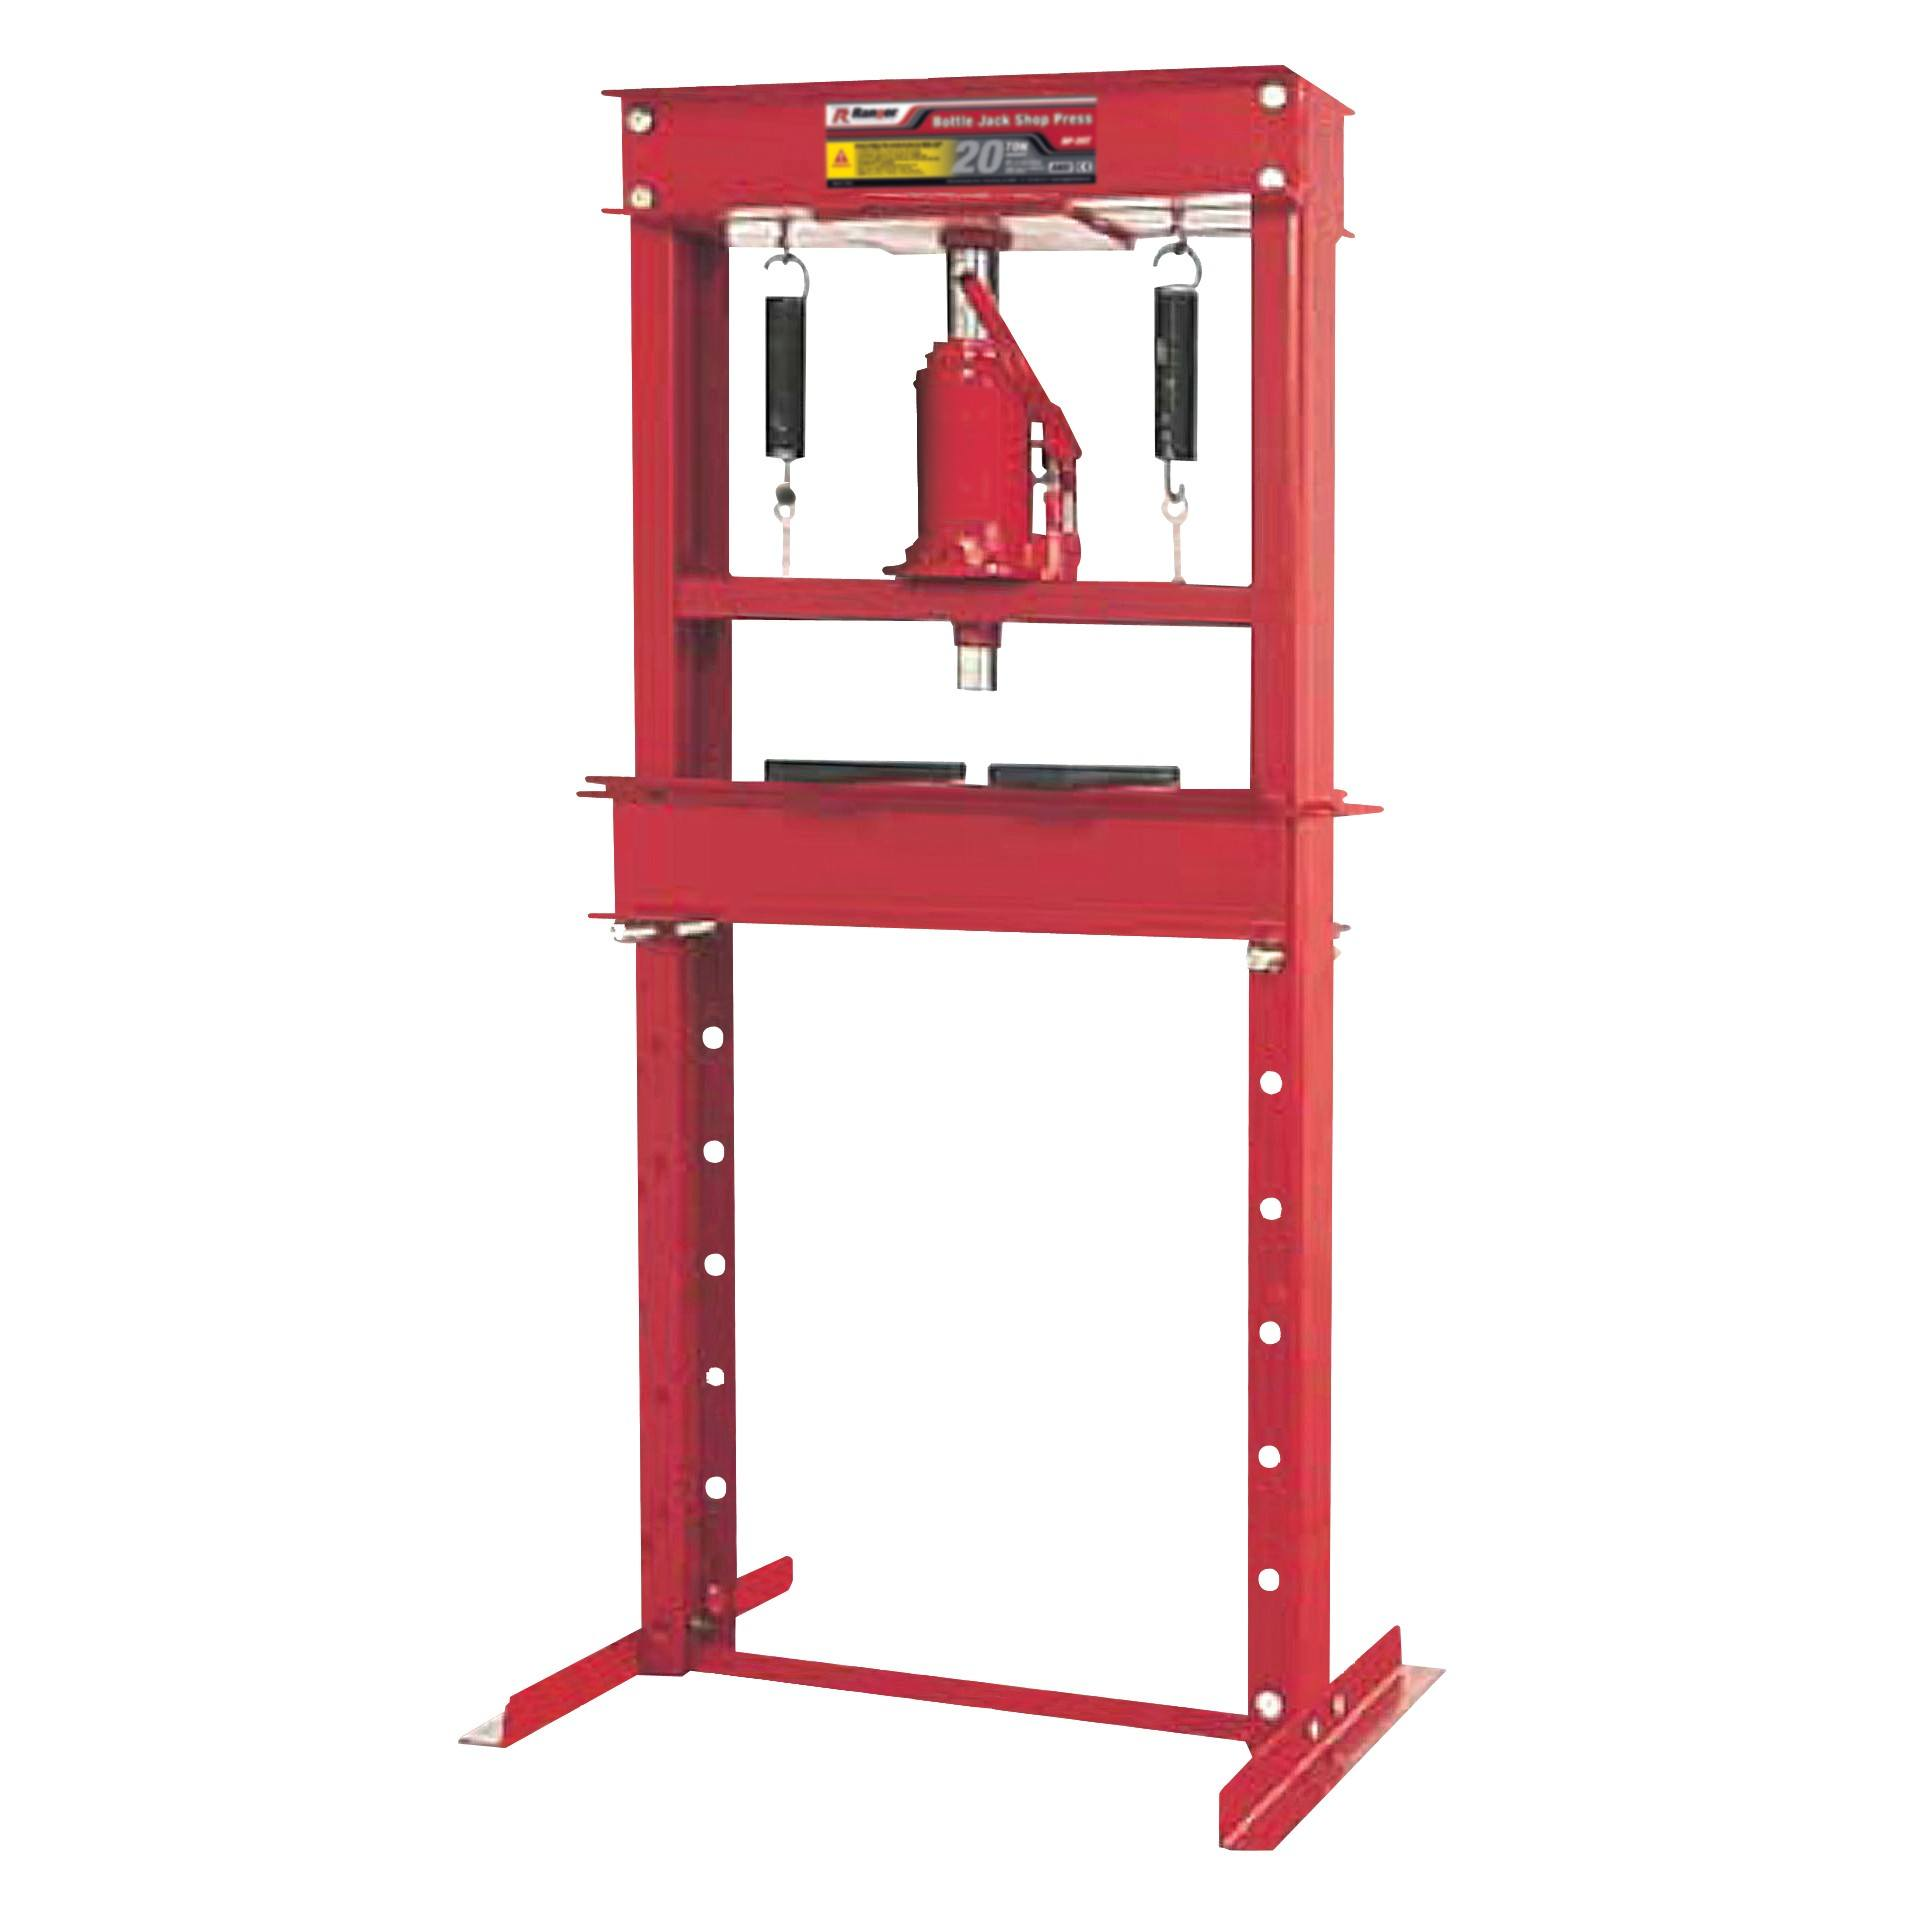 Ranger Rp-20T 20-Ton Bottle Jack Shop Press